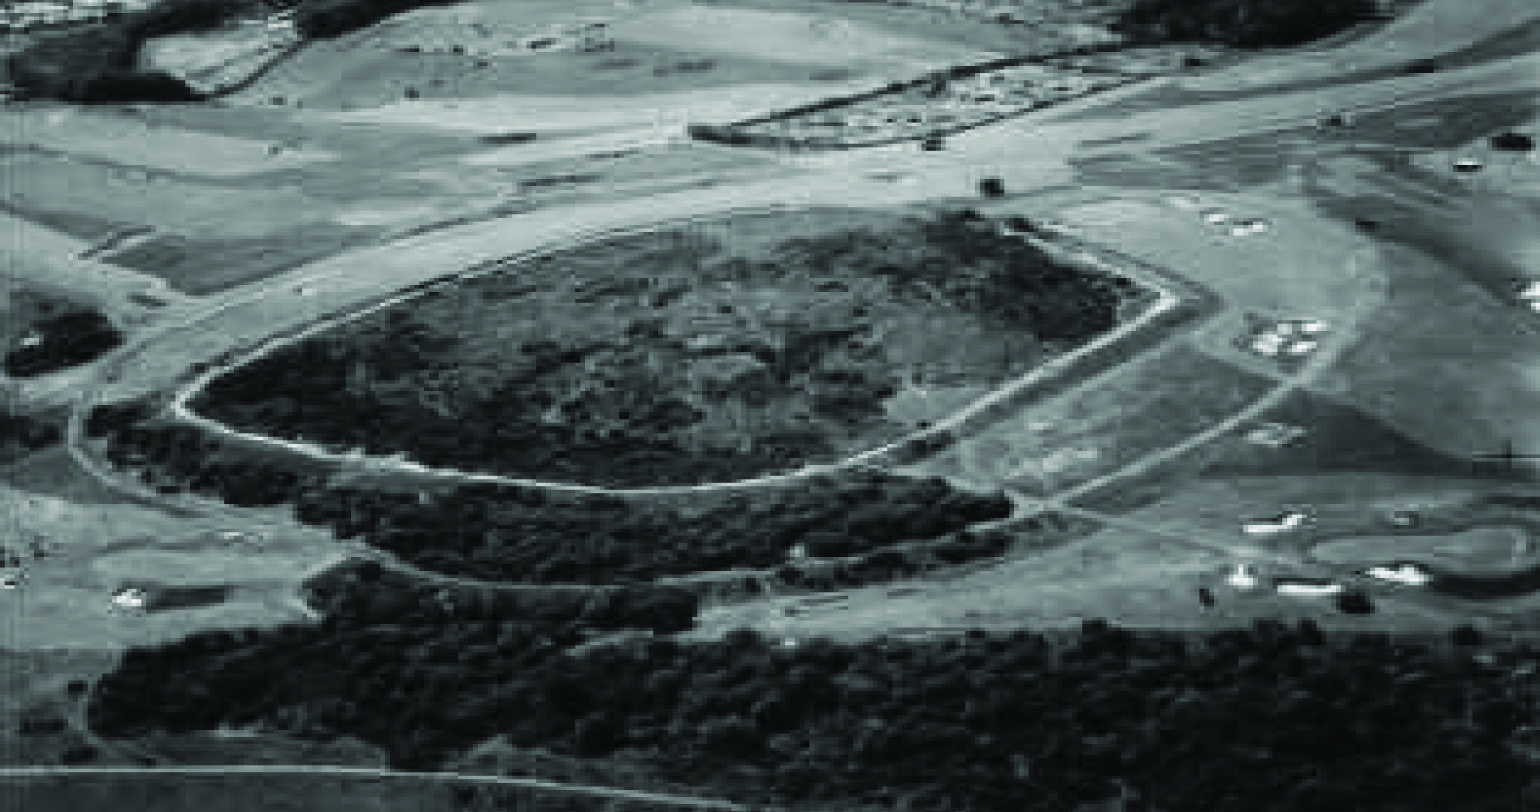 An aerial view of Hollingbury Camp, showing features of the Iron Age hill fort and of the surrounding landscape. Dating from the sixth century to about the middle of the second century BCE, it is a scheduled ancient monument, covering about 9 acres in a rough square about 600 feet across, with gateways to east and west through ramparts that can still be seen. The camp was excavated in 1908 by Herbert S. Toms, a Curator at Brighton Museum, by Cecil Curwen and Brighton and Hove Archaeological Society in 1931, and by John Holmes in 1967. The sites of some wooden huts have been discovered within the fort.